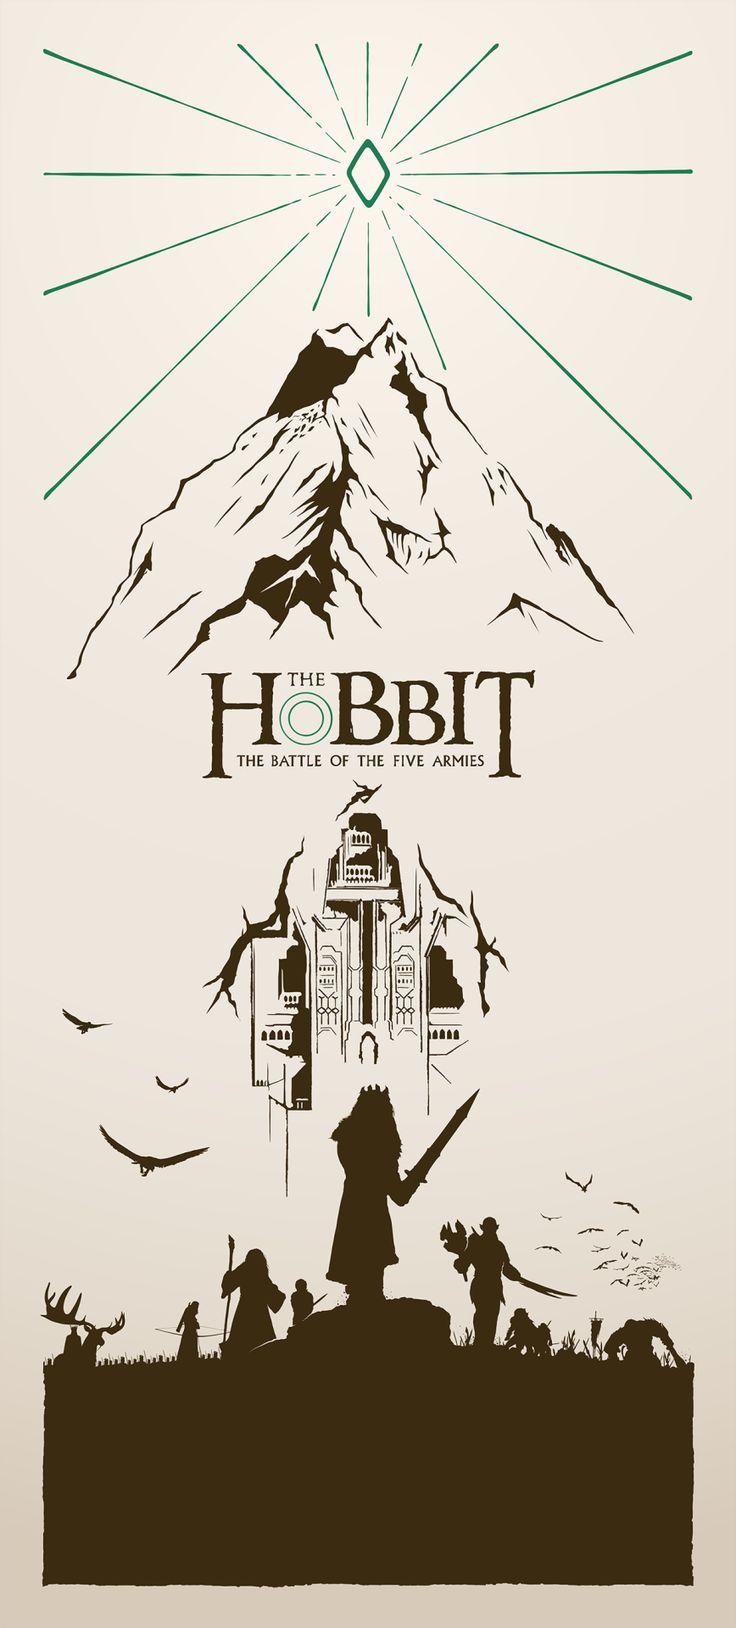 The Hobbit: Battle of the Five Armies Poster - Created by Kevin Collert